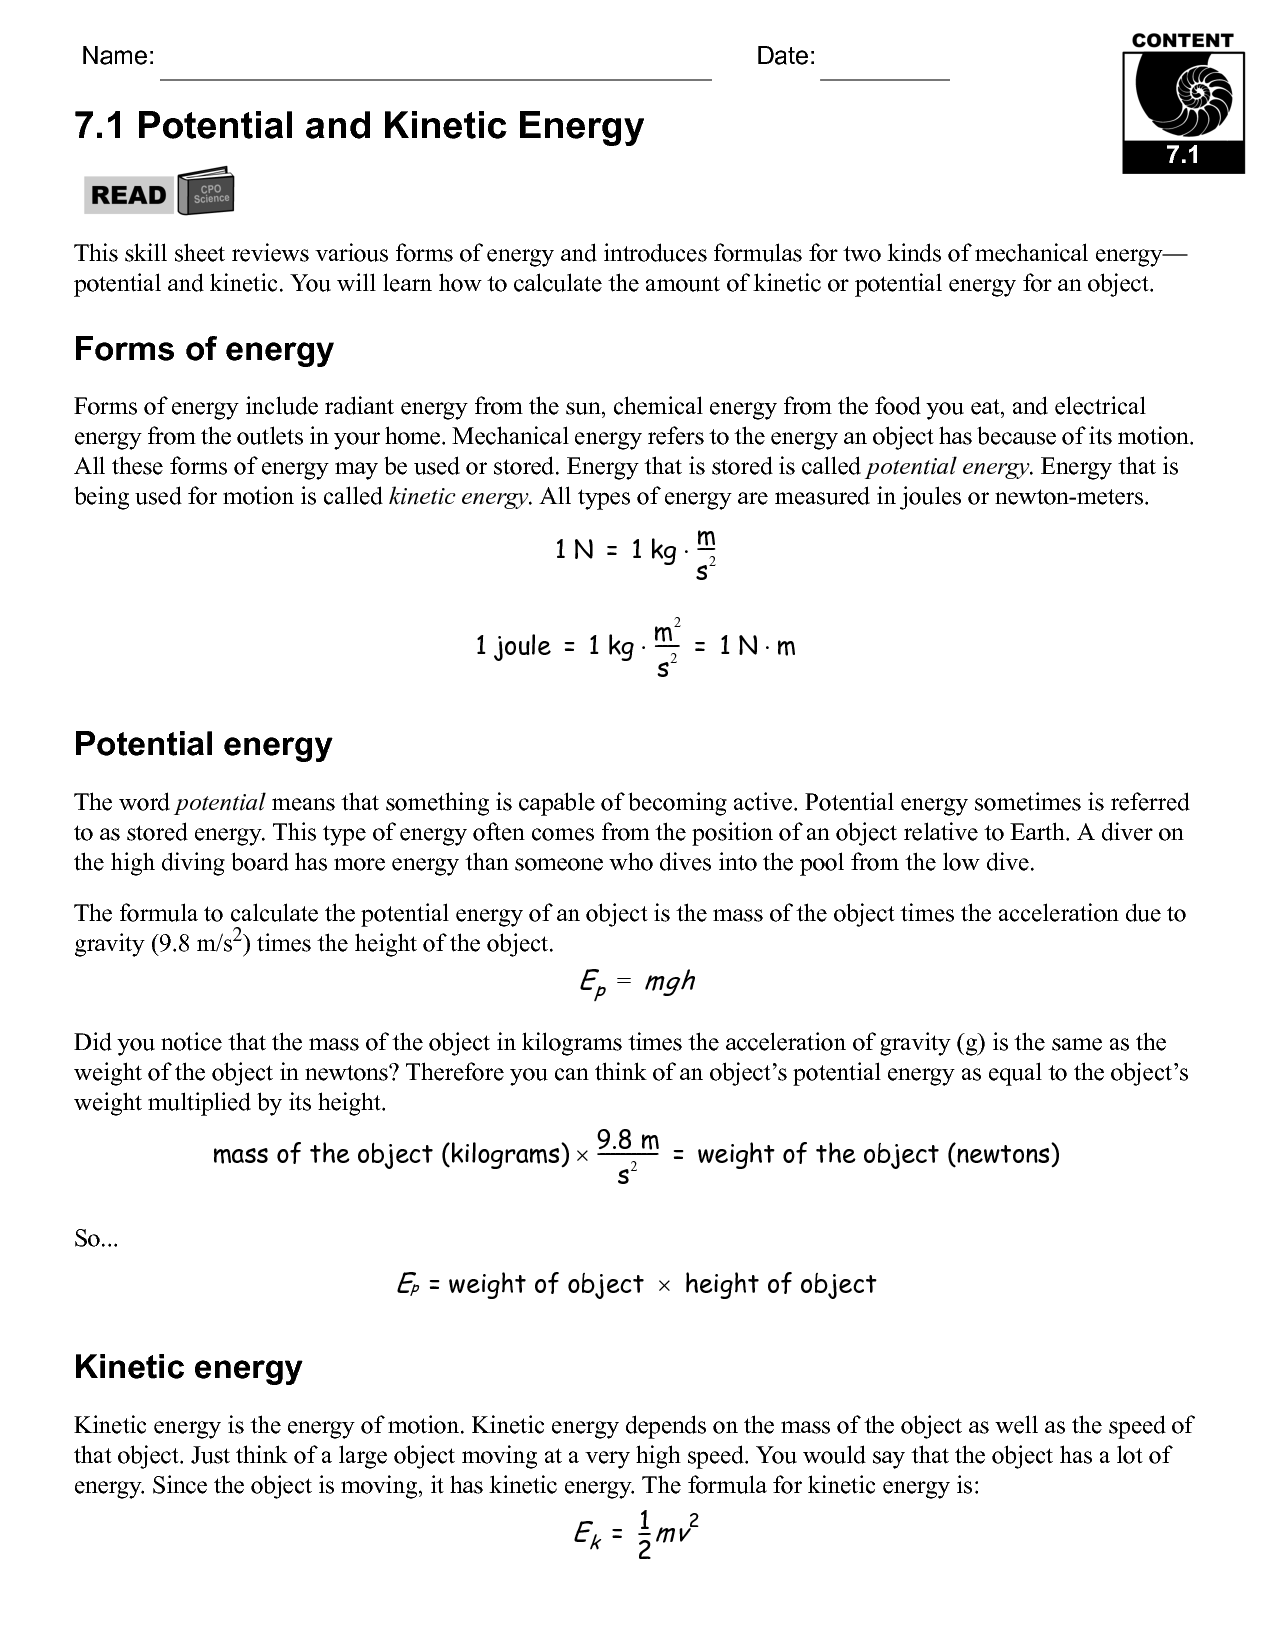 Kinetic Energy Practice Problems Worksheet Answers